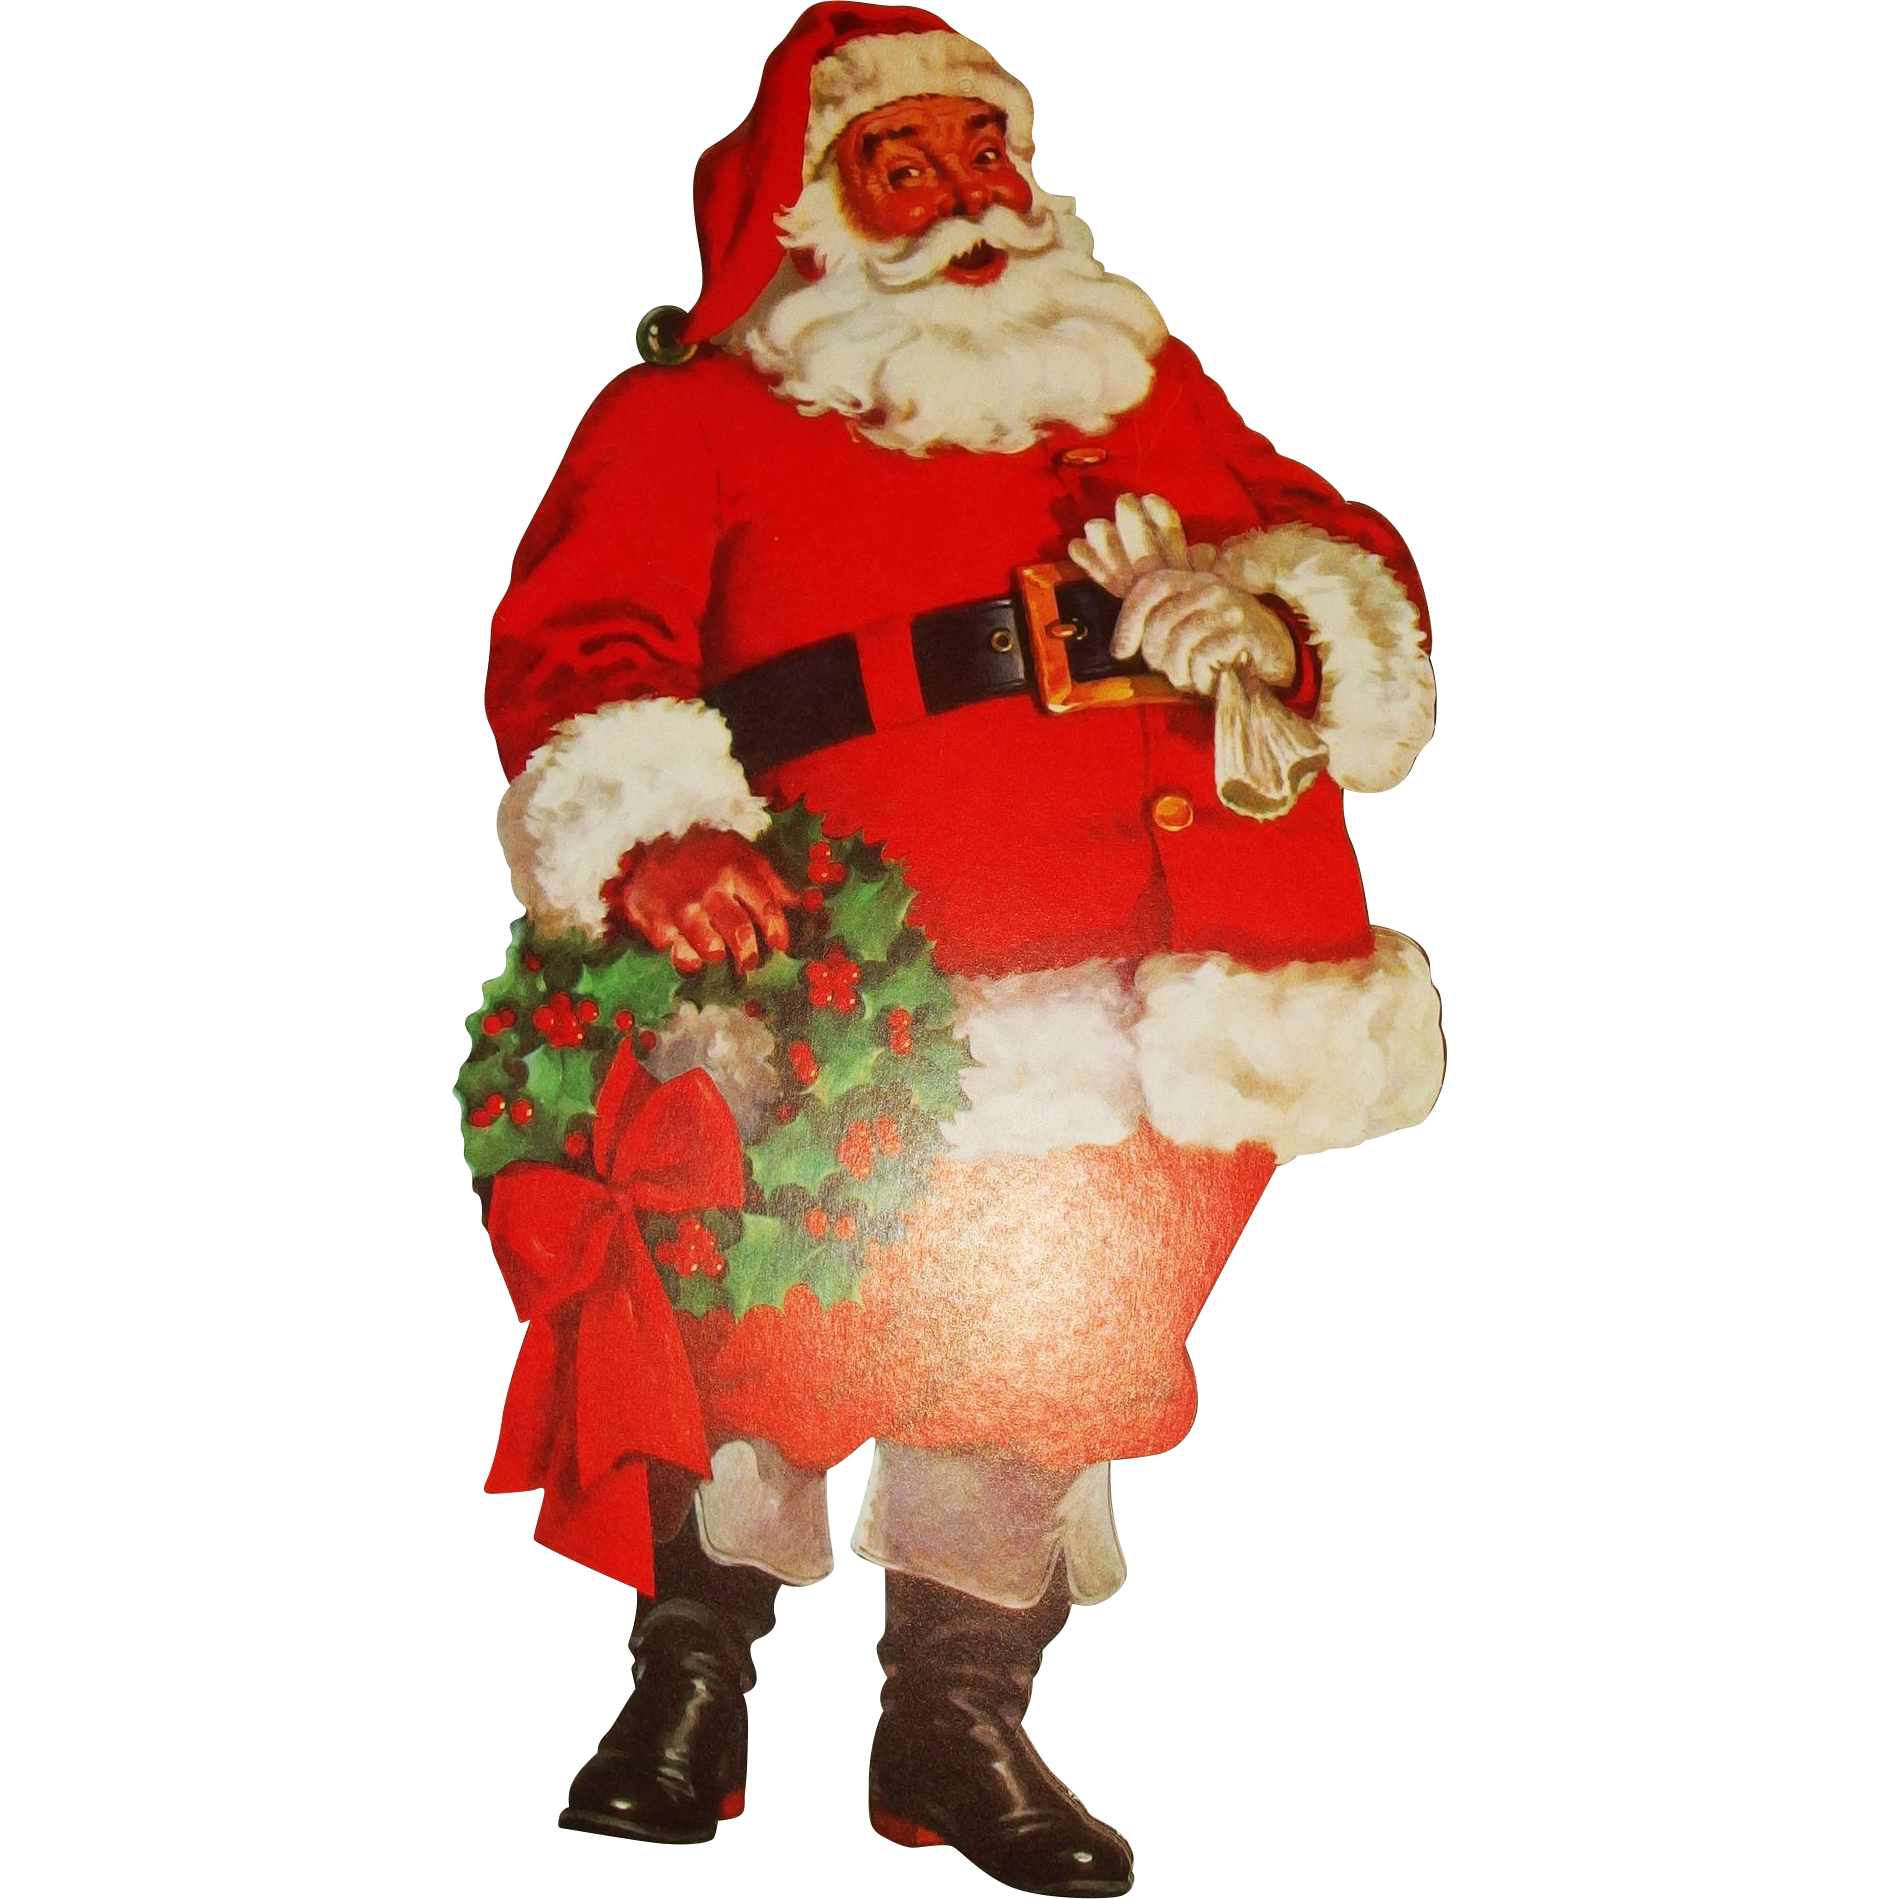 wallpaperup santa claus decor tree wallpaper christmas snow decorations